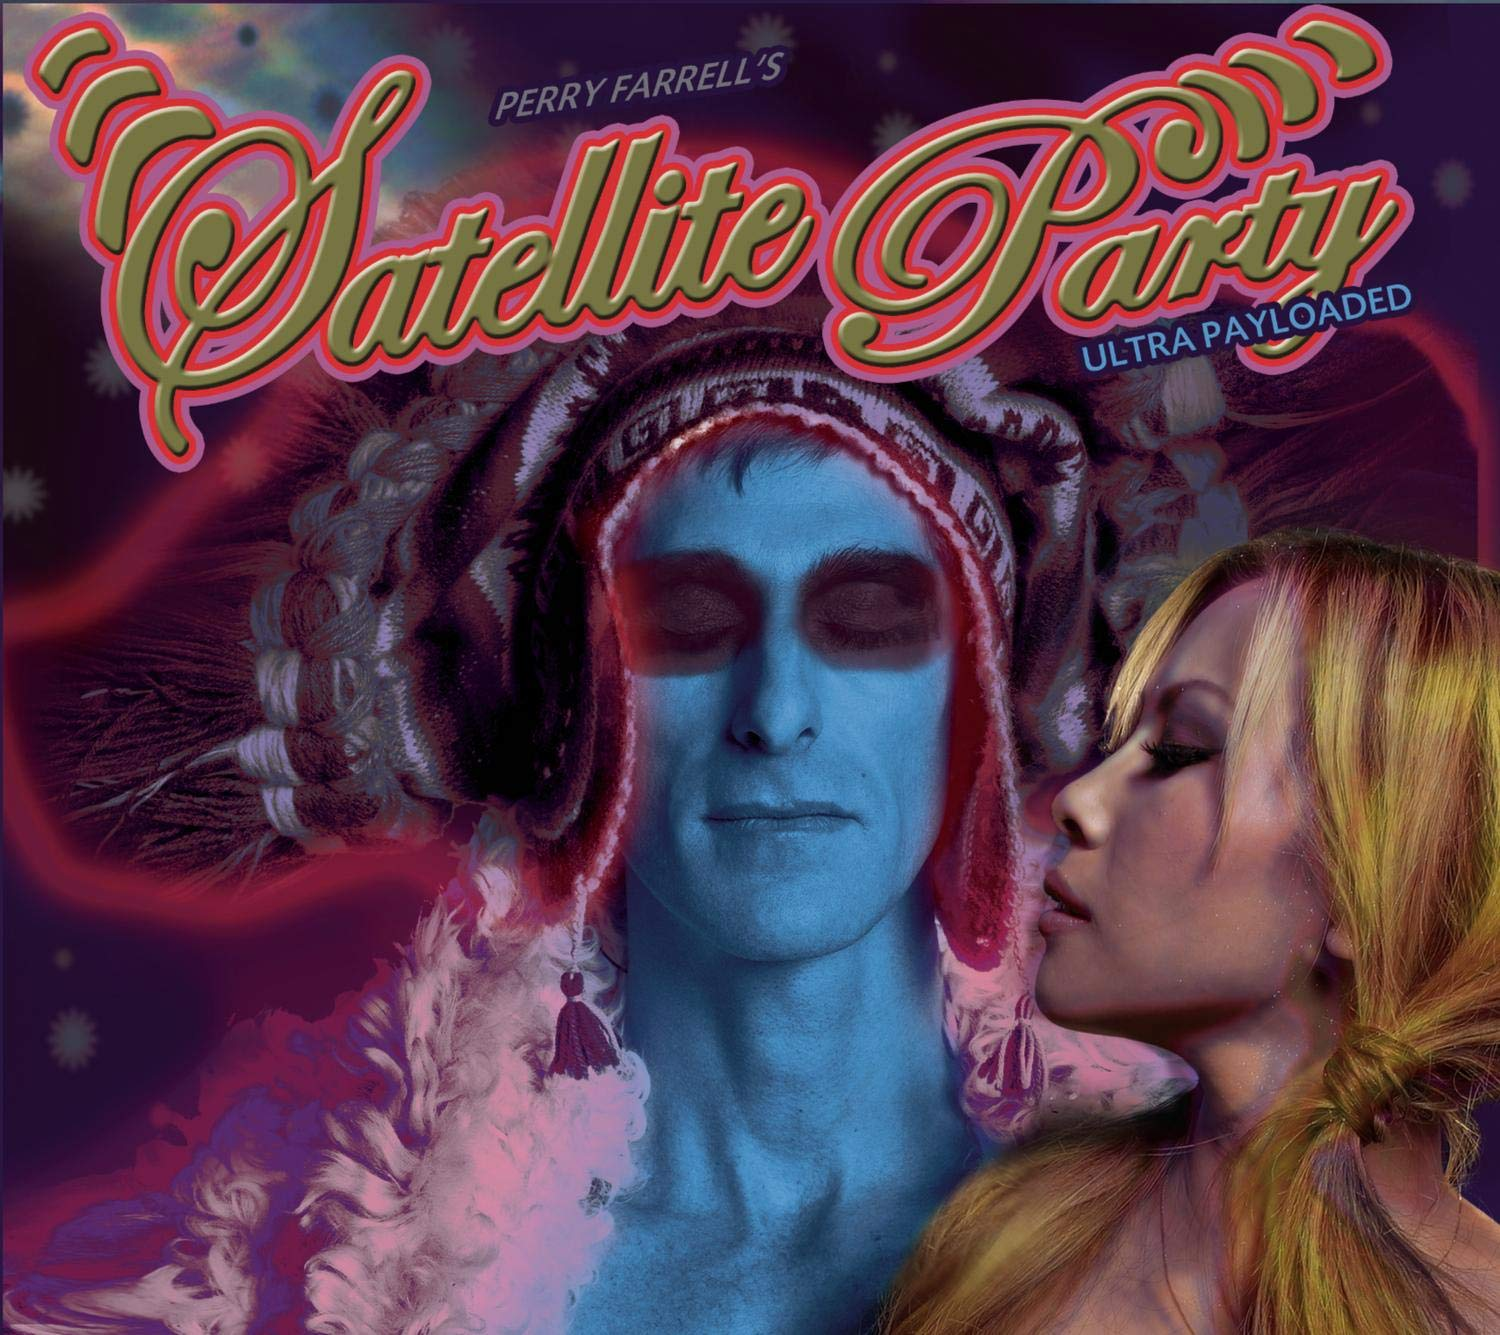 Perry Farrell's Satellite Party - Ultrapayloaded